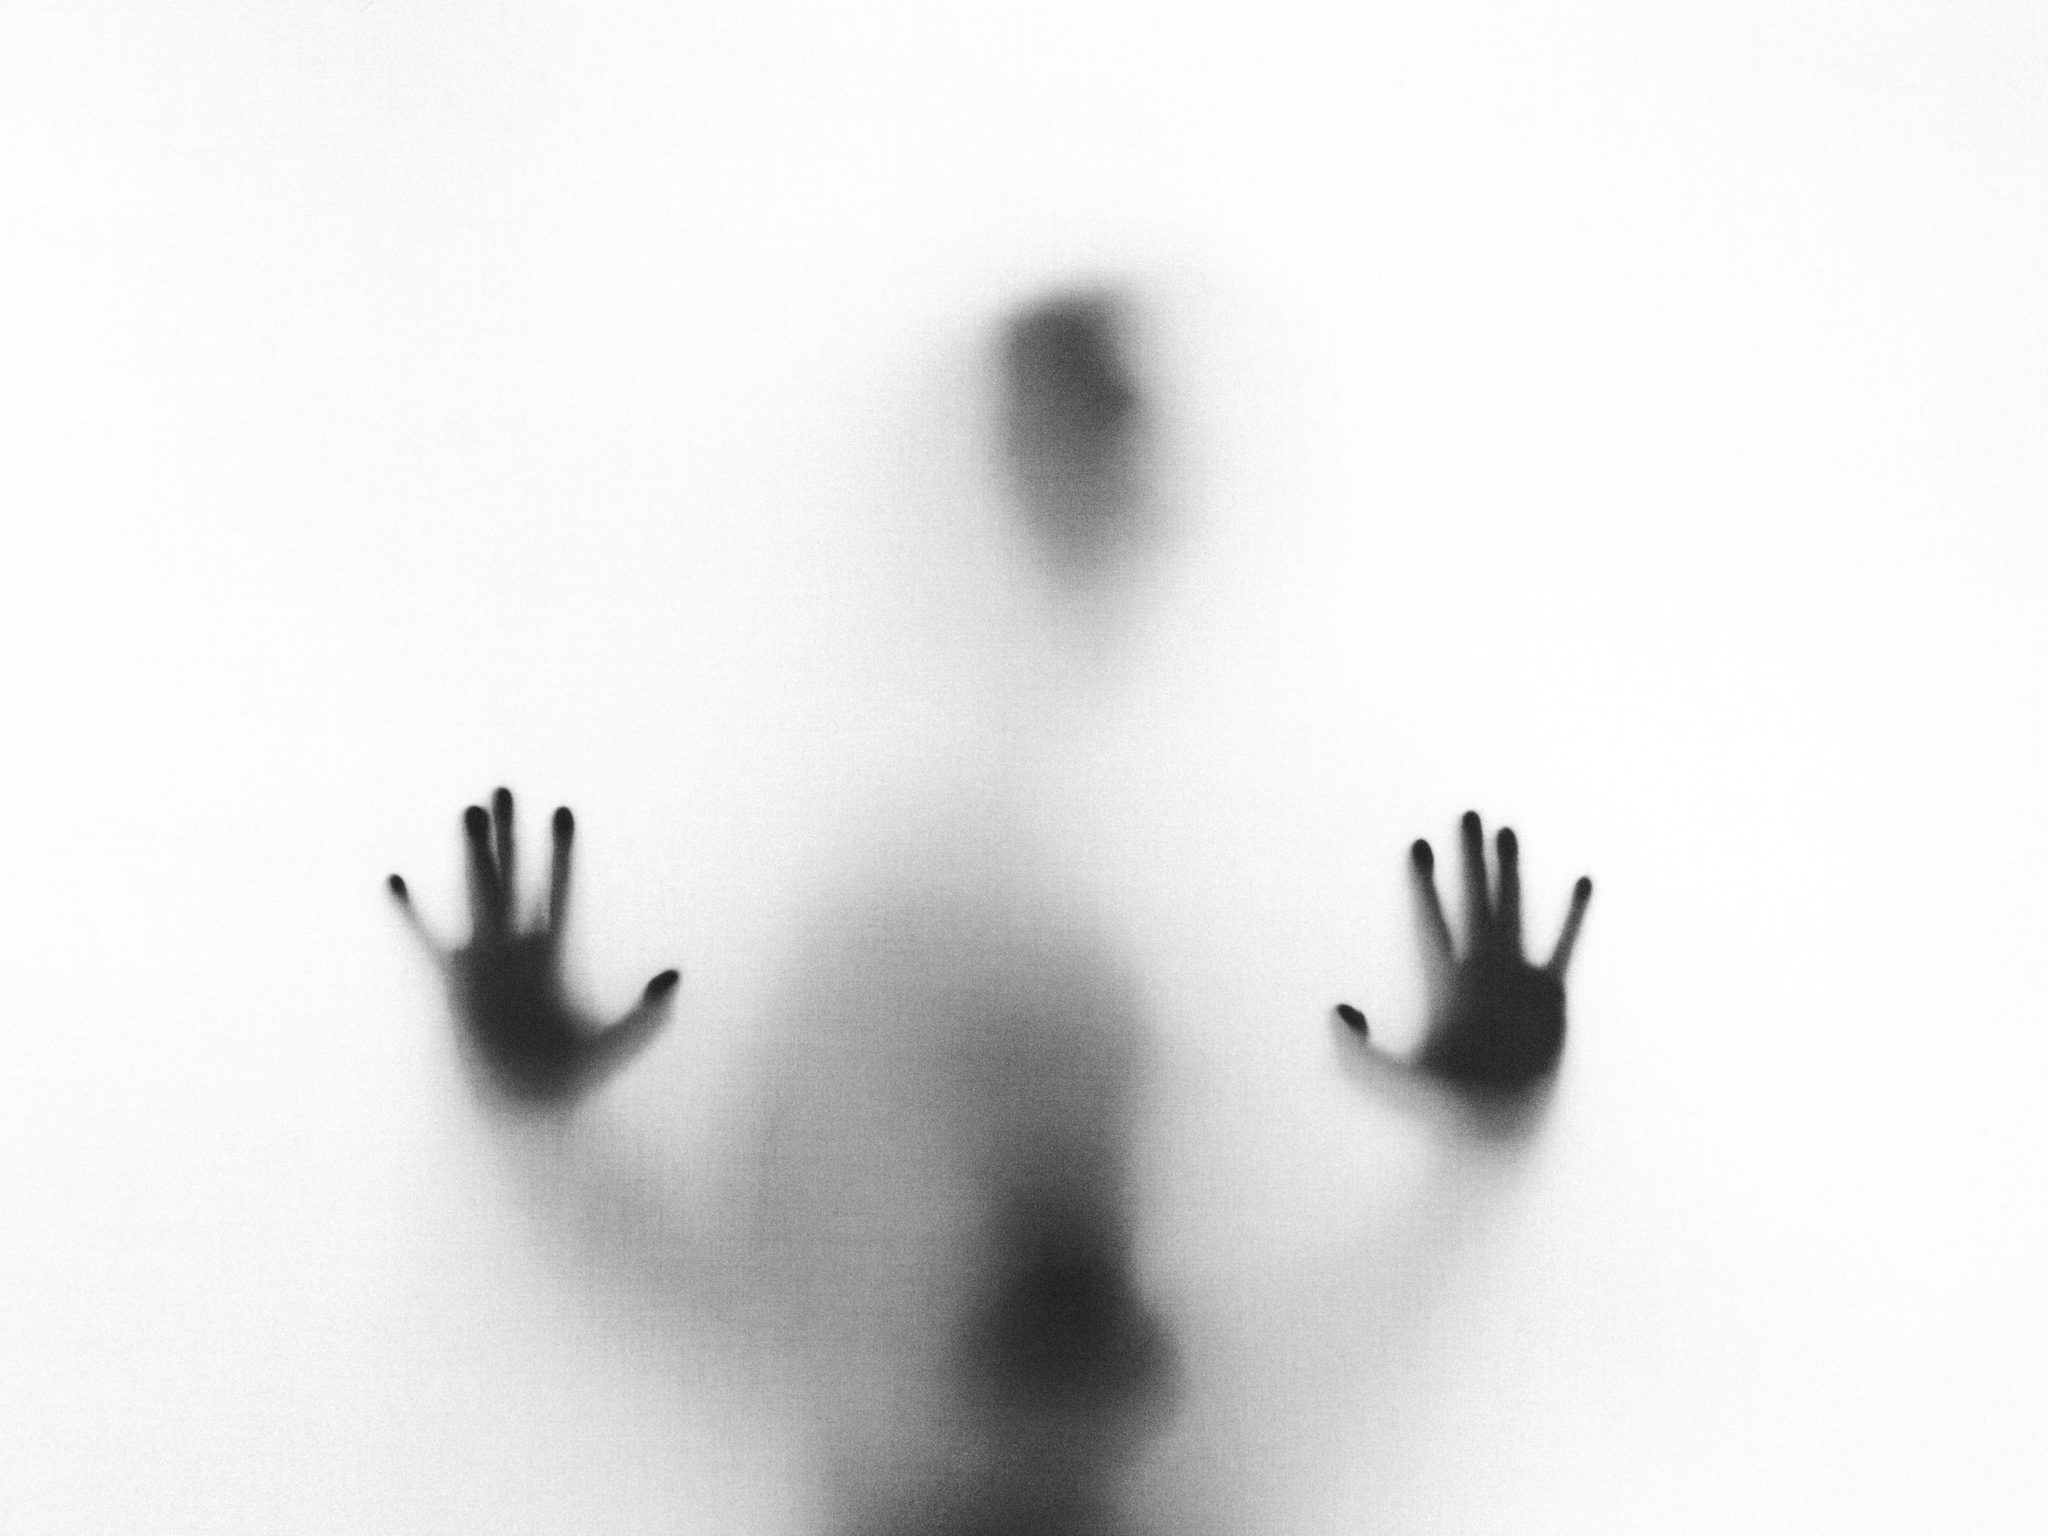 man standing behind glass surrounded by fog with only hands visible on glass